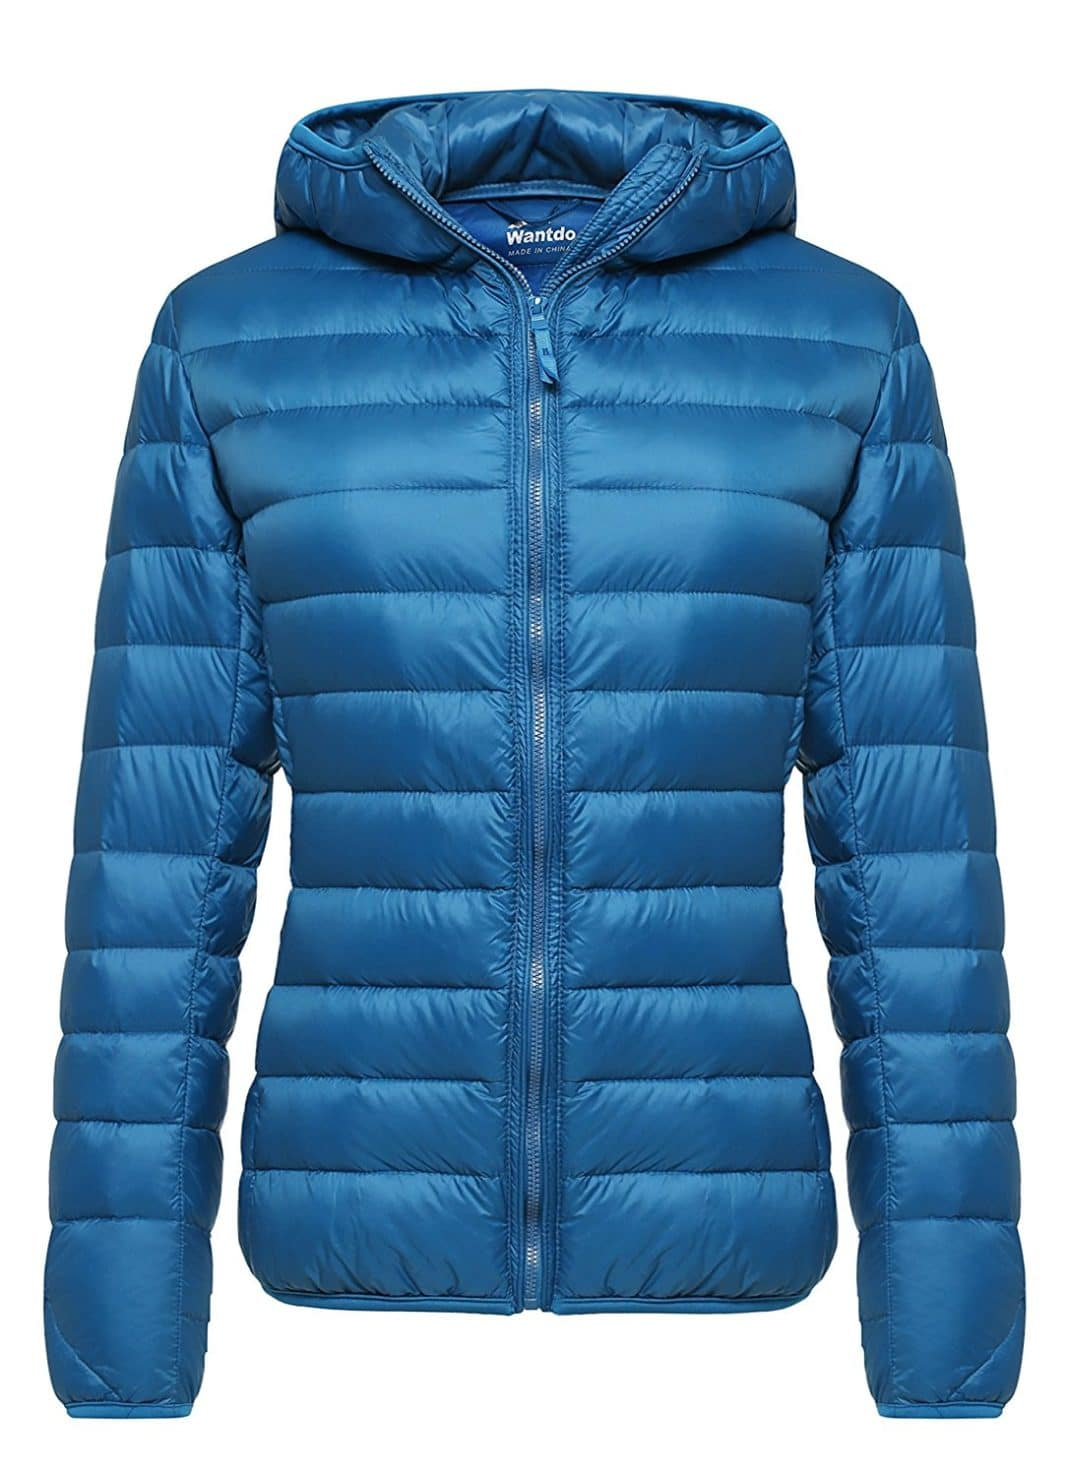 best down jackets for women - Wantdo